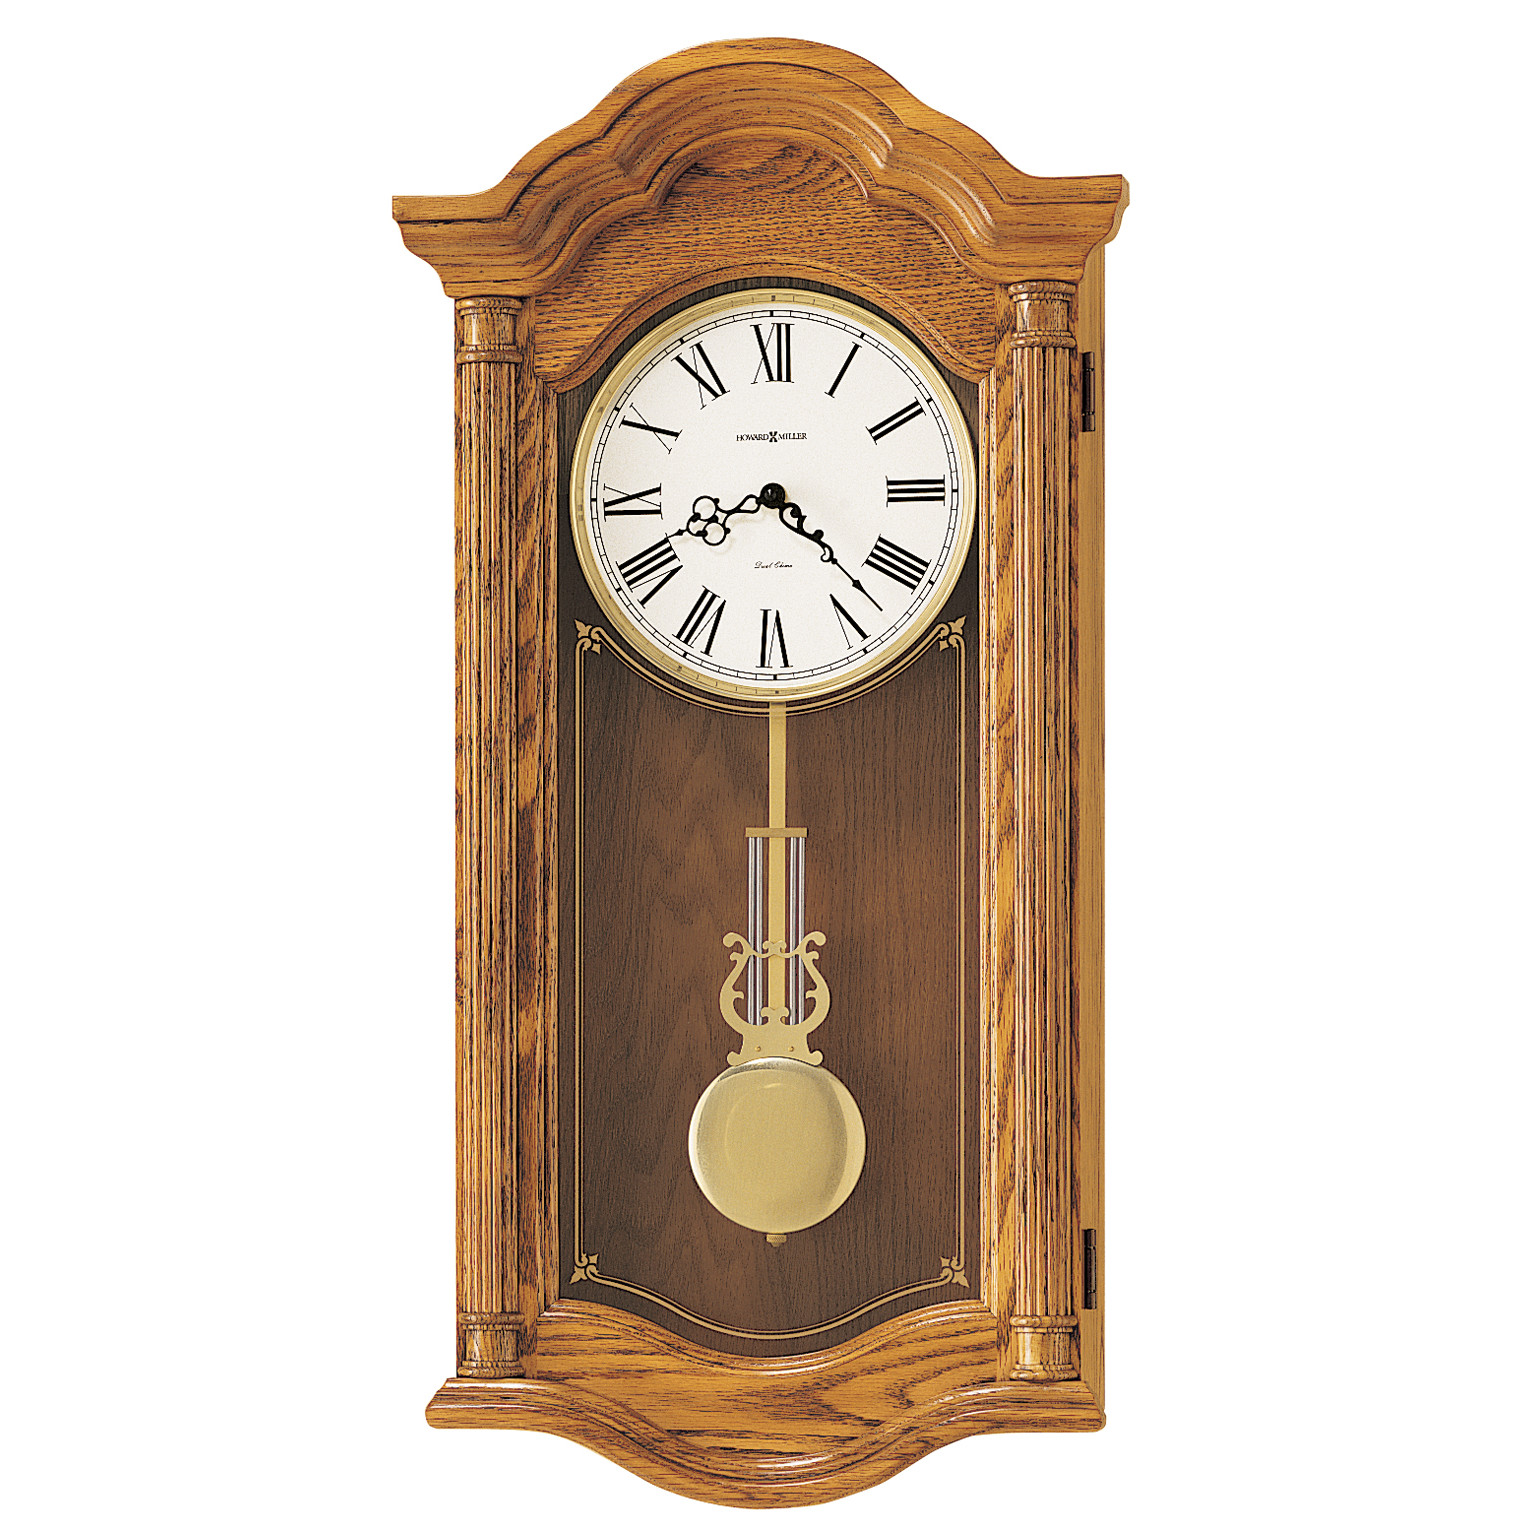 Grandfather Clock Howard Miller | Linden Clock Company | Howard Miller Clock Parts